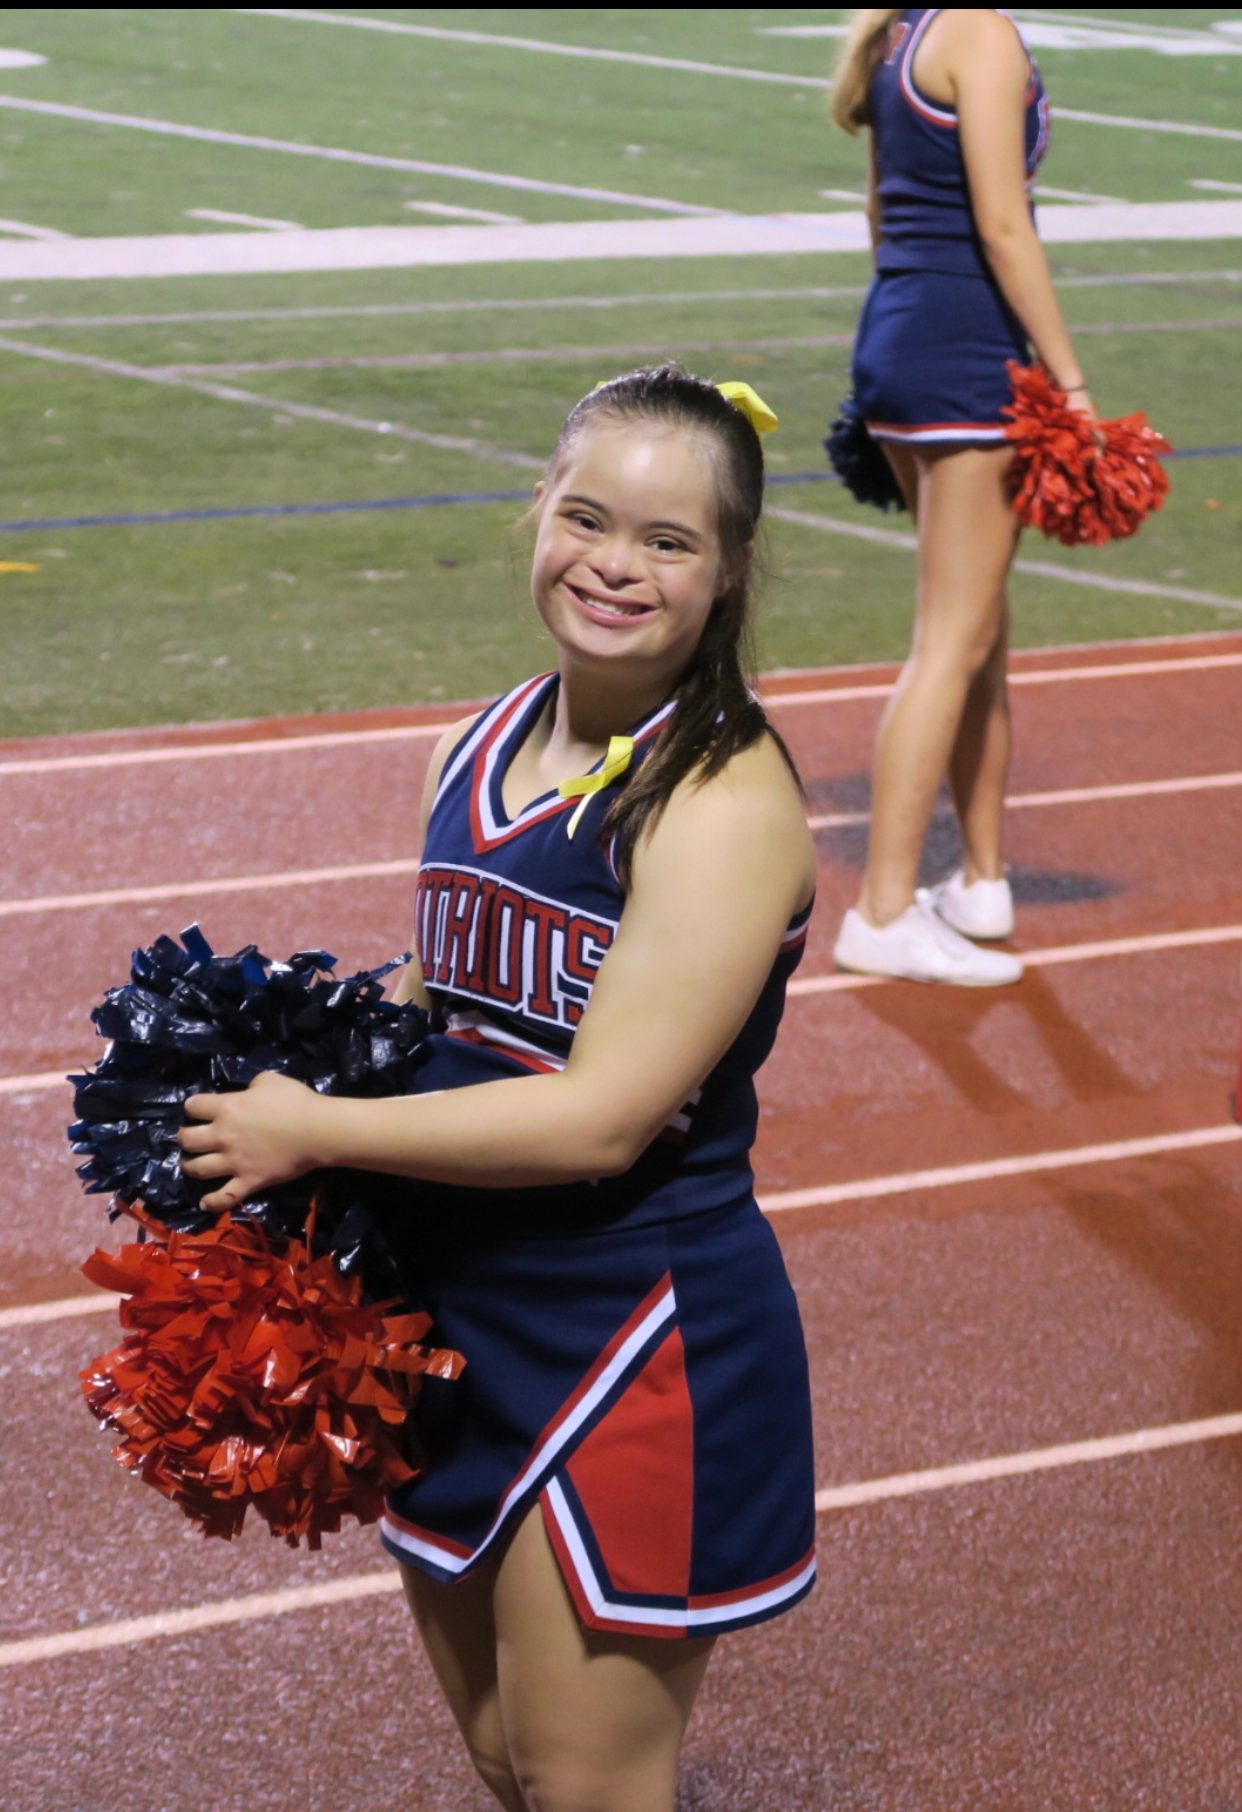 Picture of Saris Marie in her cheerleading uniform. She is standing on her school's track with pom-poms in her hand.